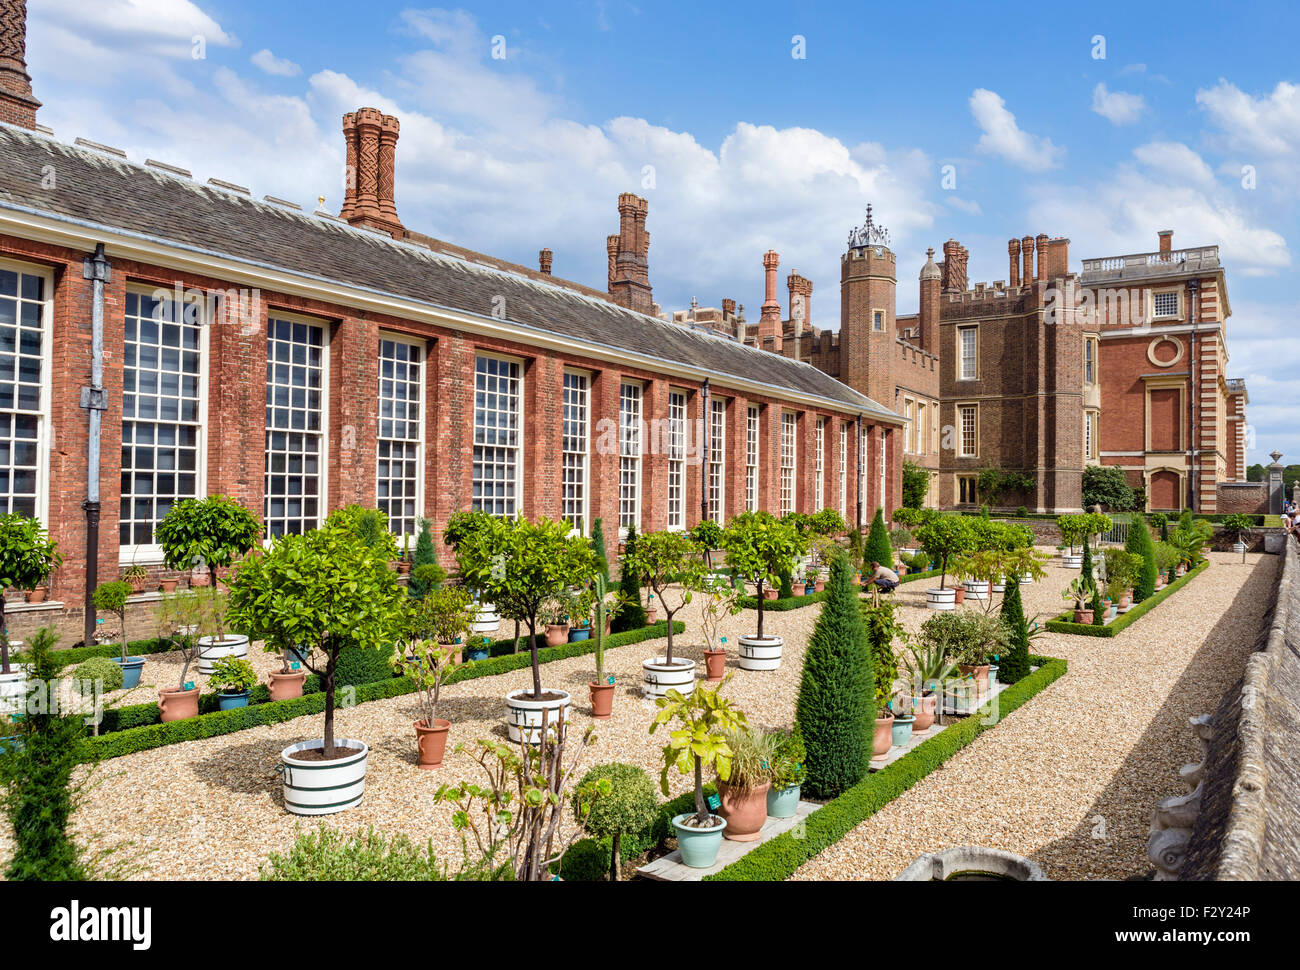 The Lower Orangery Garden and Terrace, Hampton Court Palace, Greater London, England, UK - Stock Image